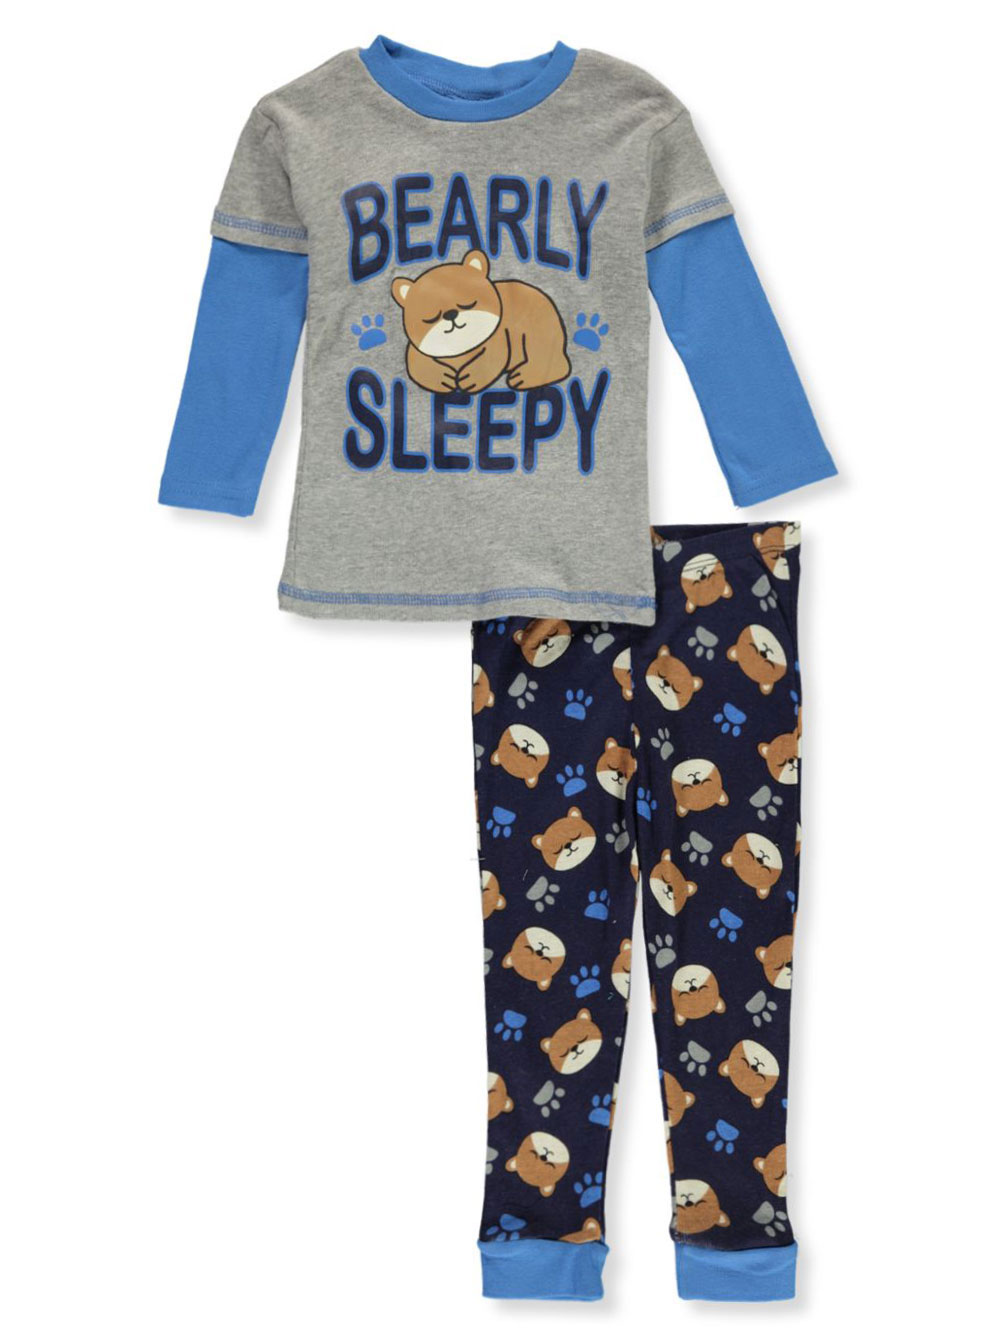 Boys Gray Multi Pajamas